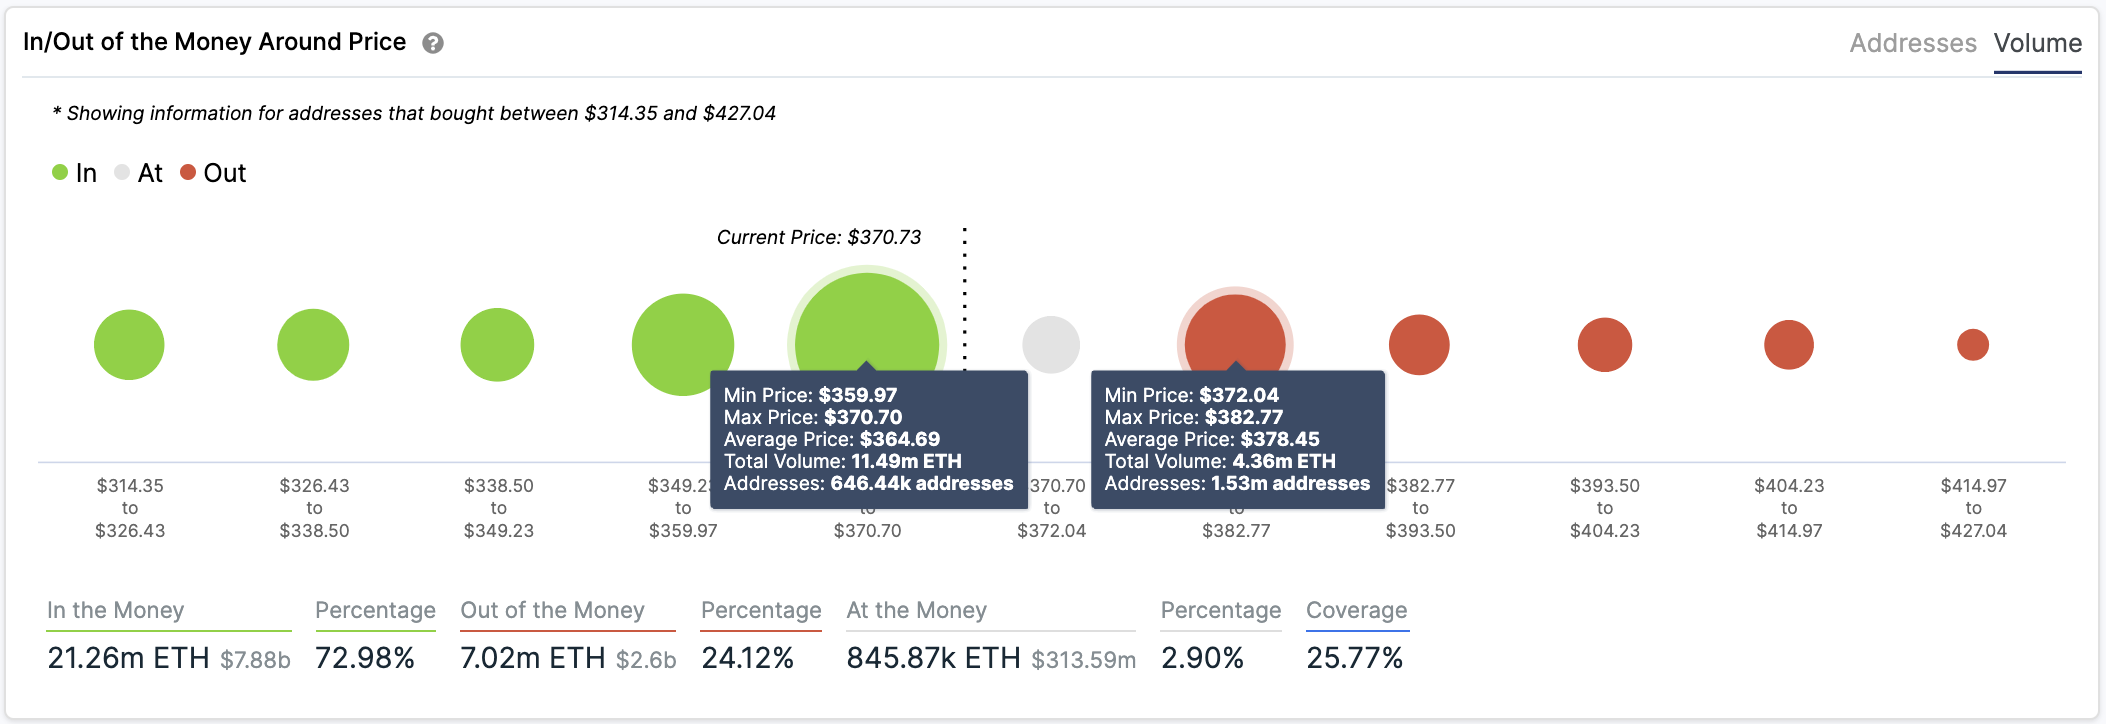 Ethereum In/Out of the Money Around Price by IntoTheBlock